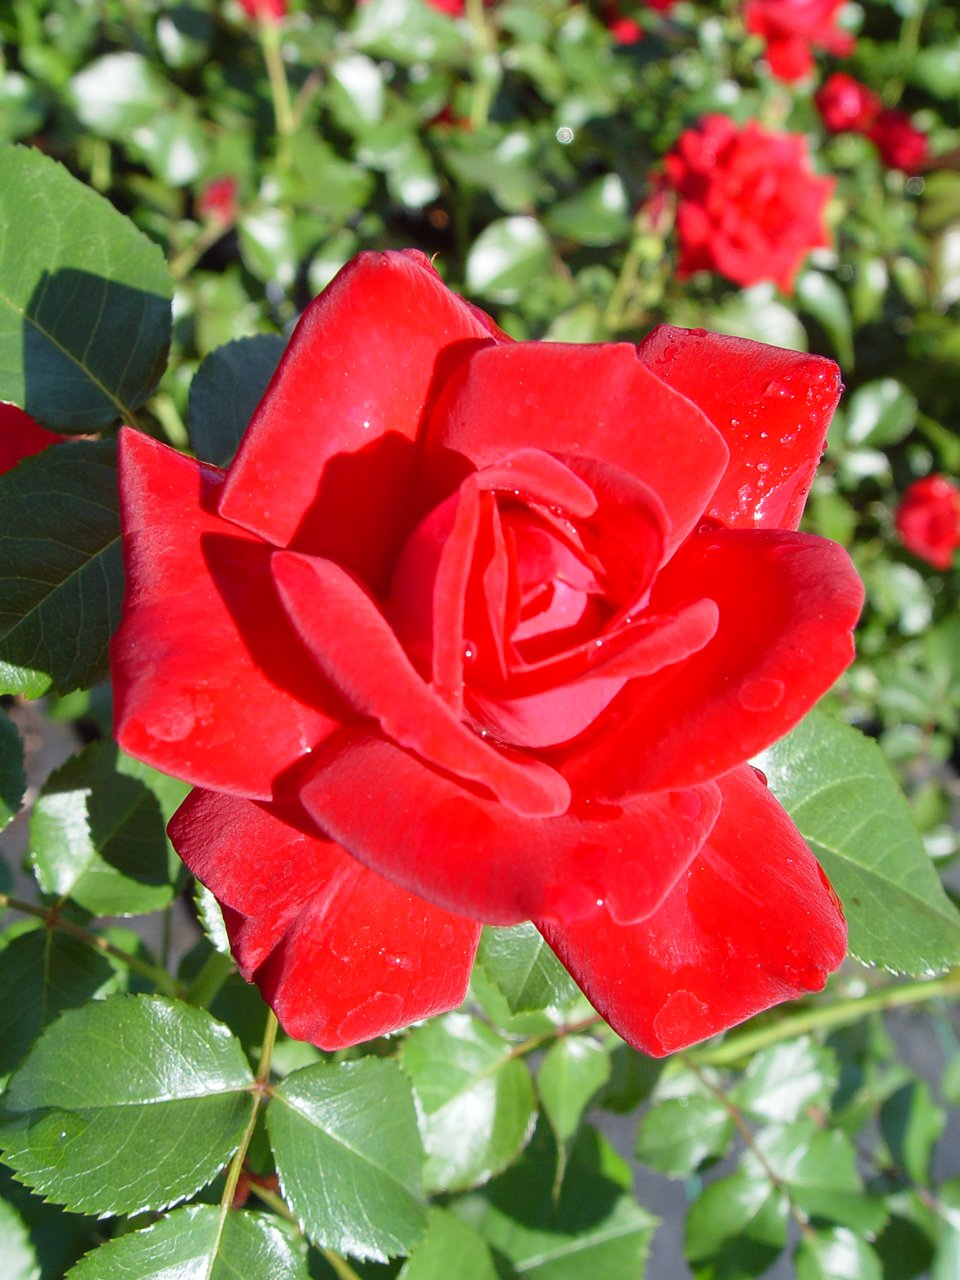 Easy Elegance Roses - Rosa Super Hero (Rose) Rose, red flowers, #2 - Size Container by Green Promise Farms (Image #3)